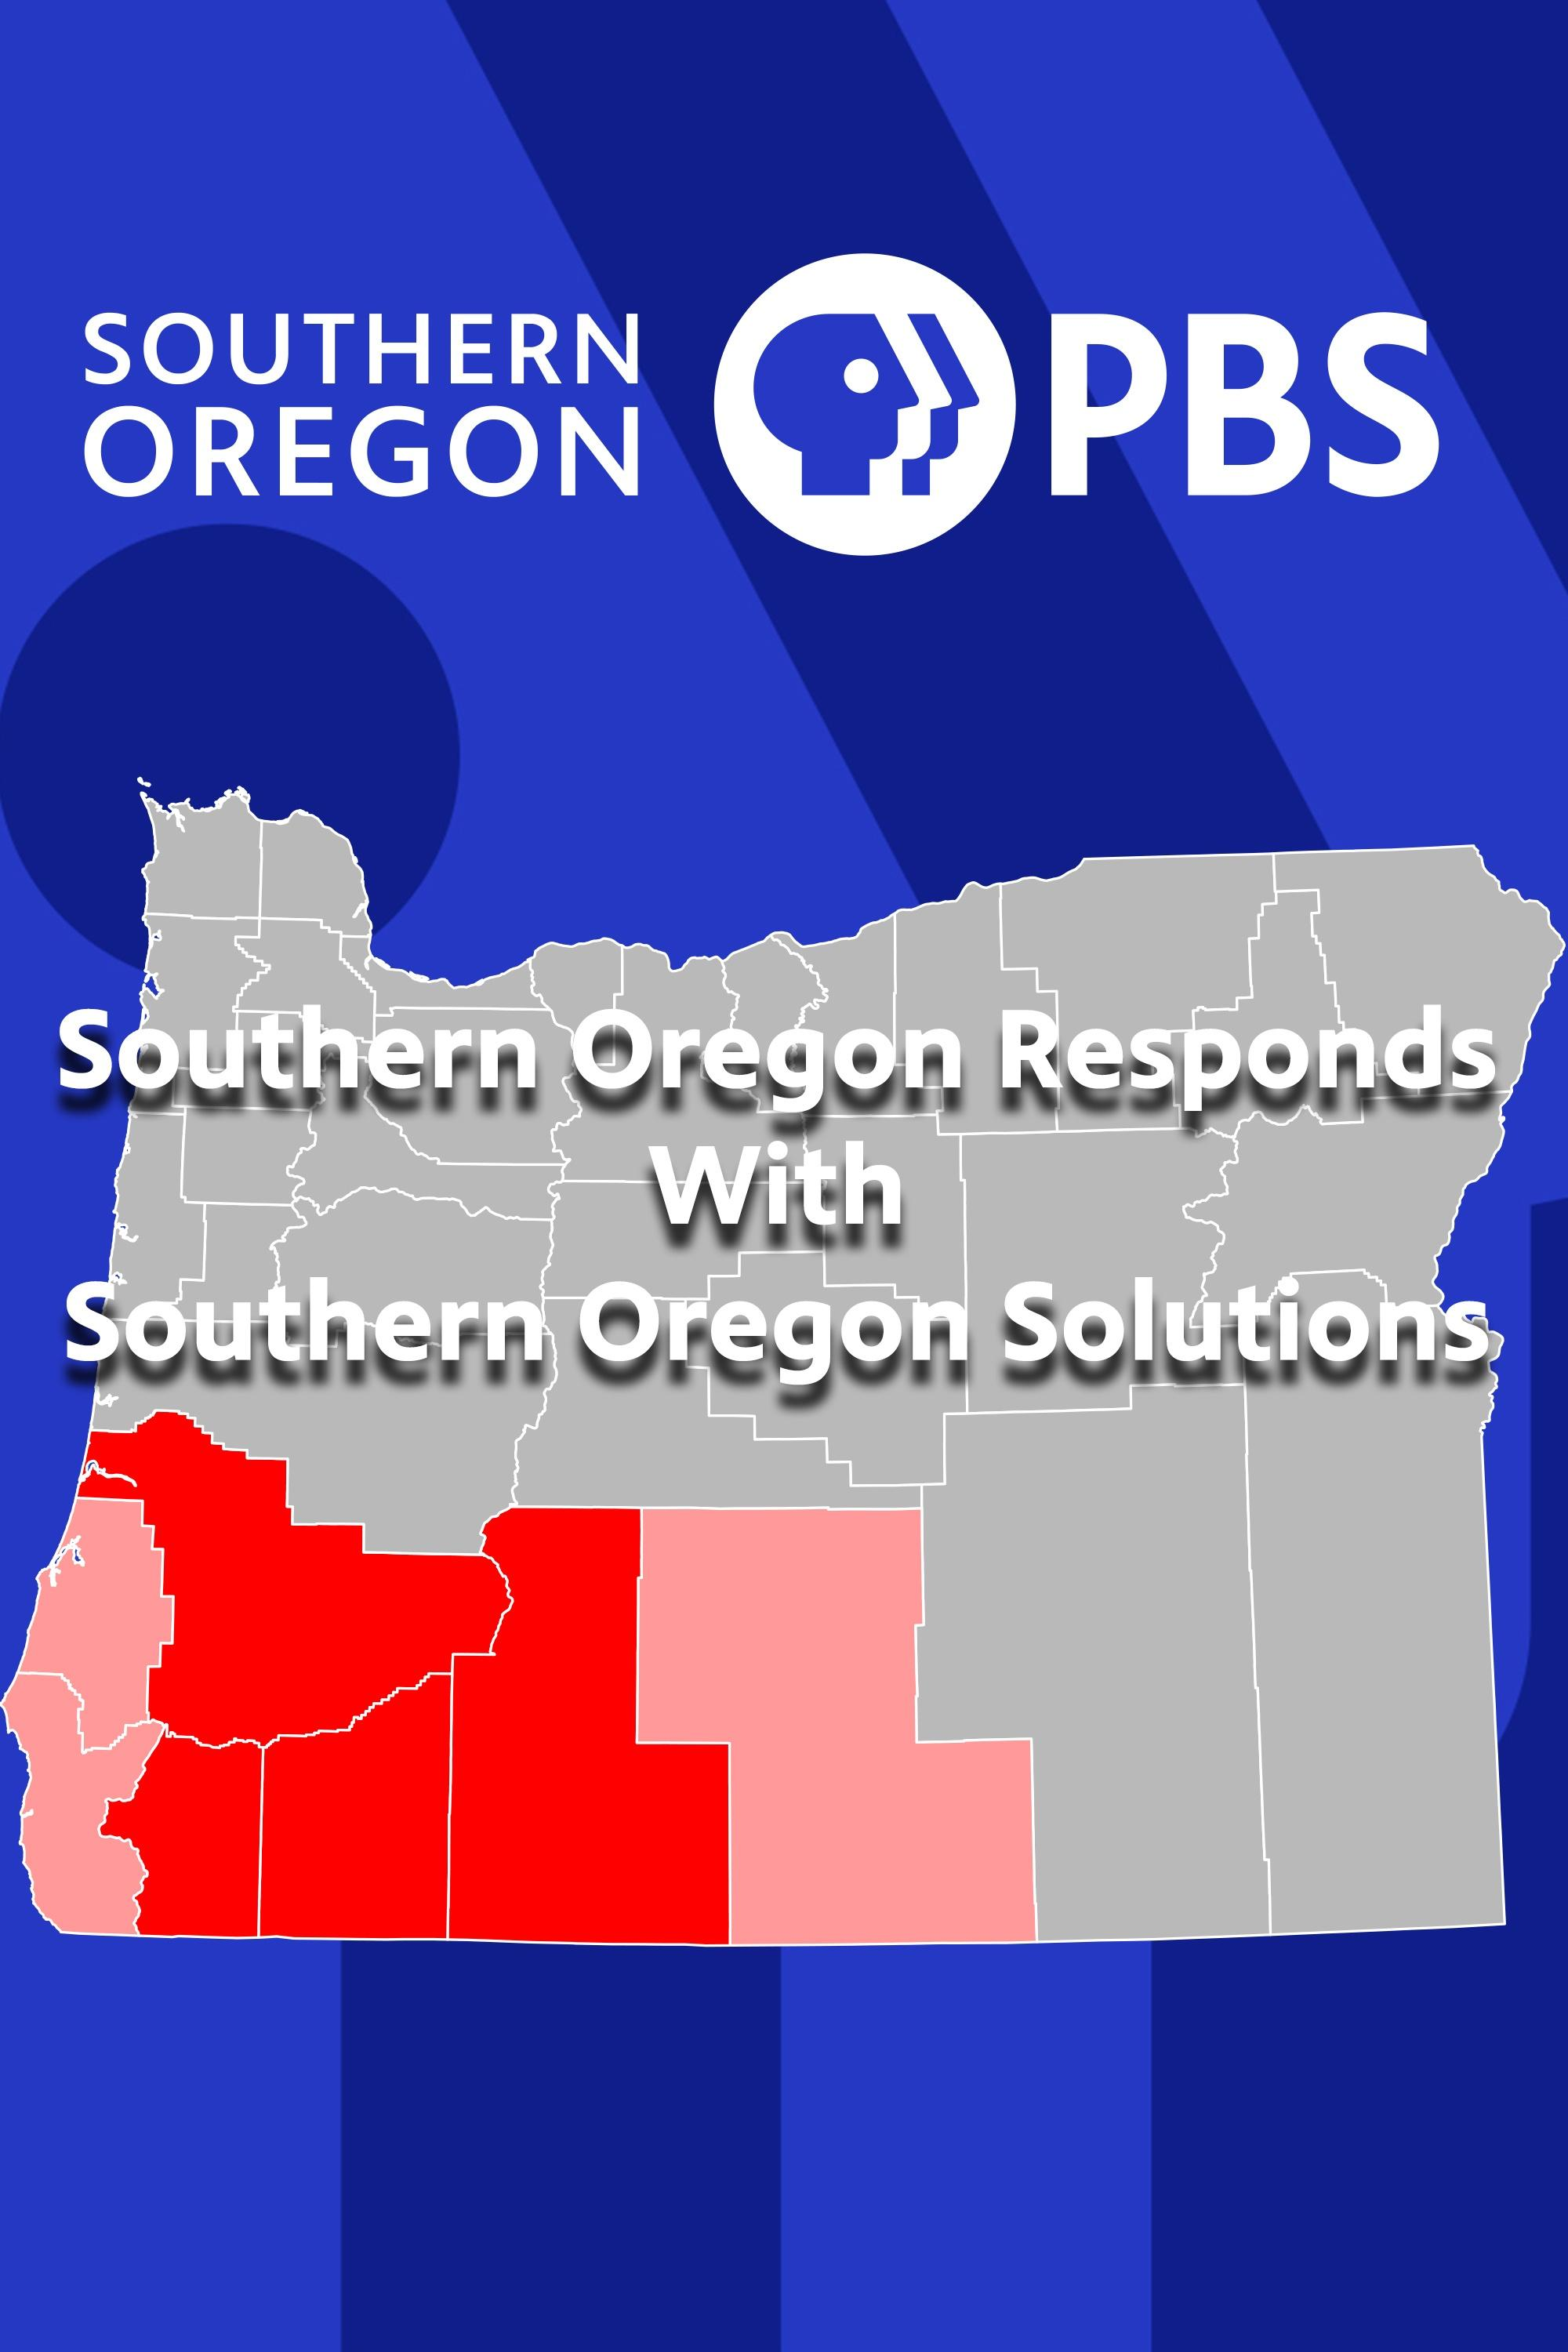 Southern Oregon Responds show image